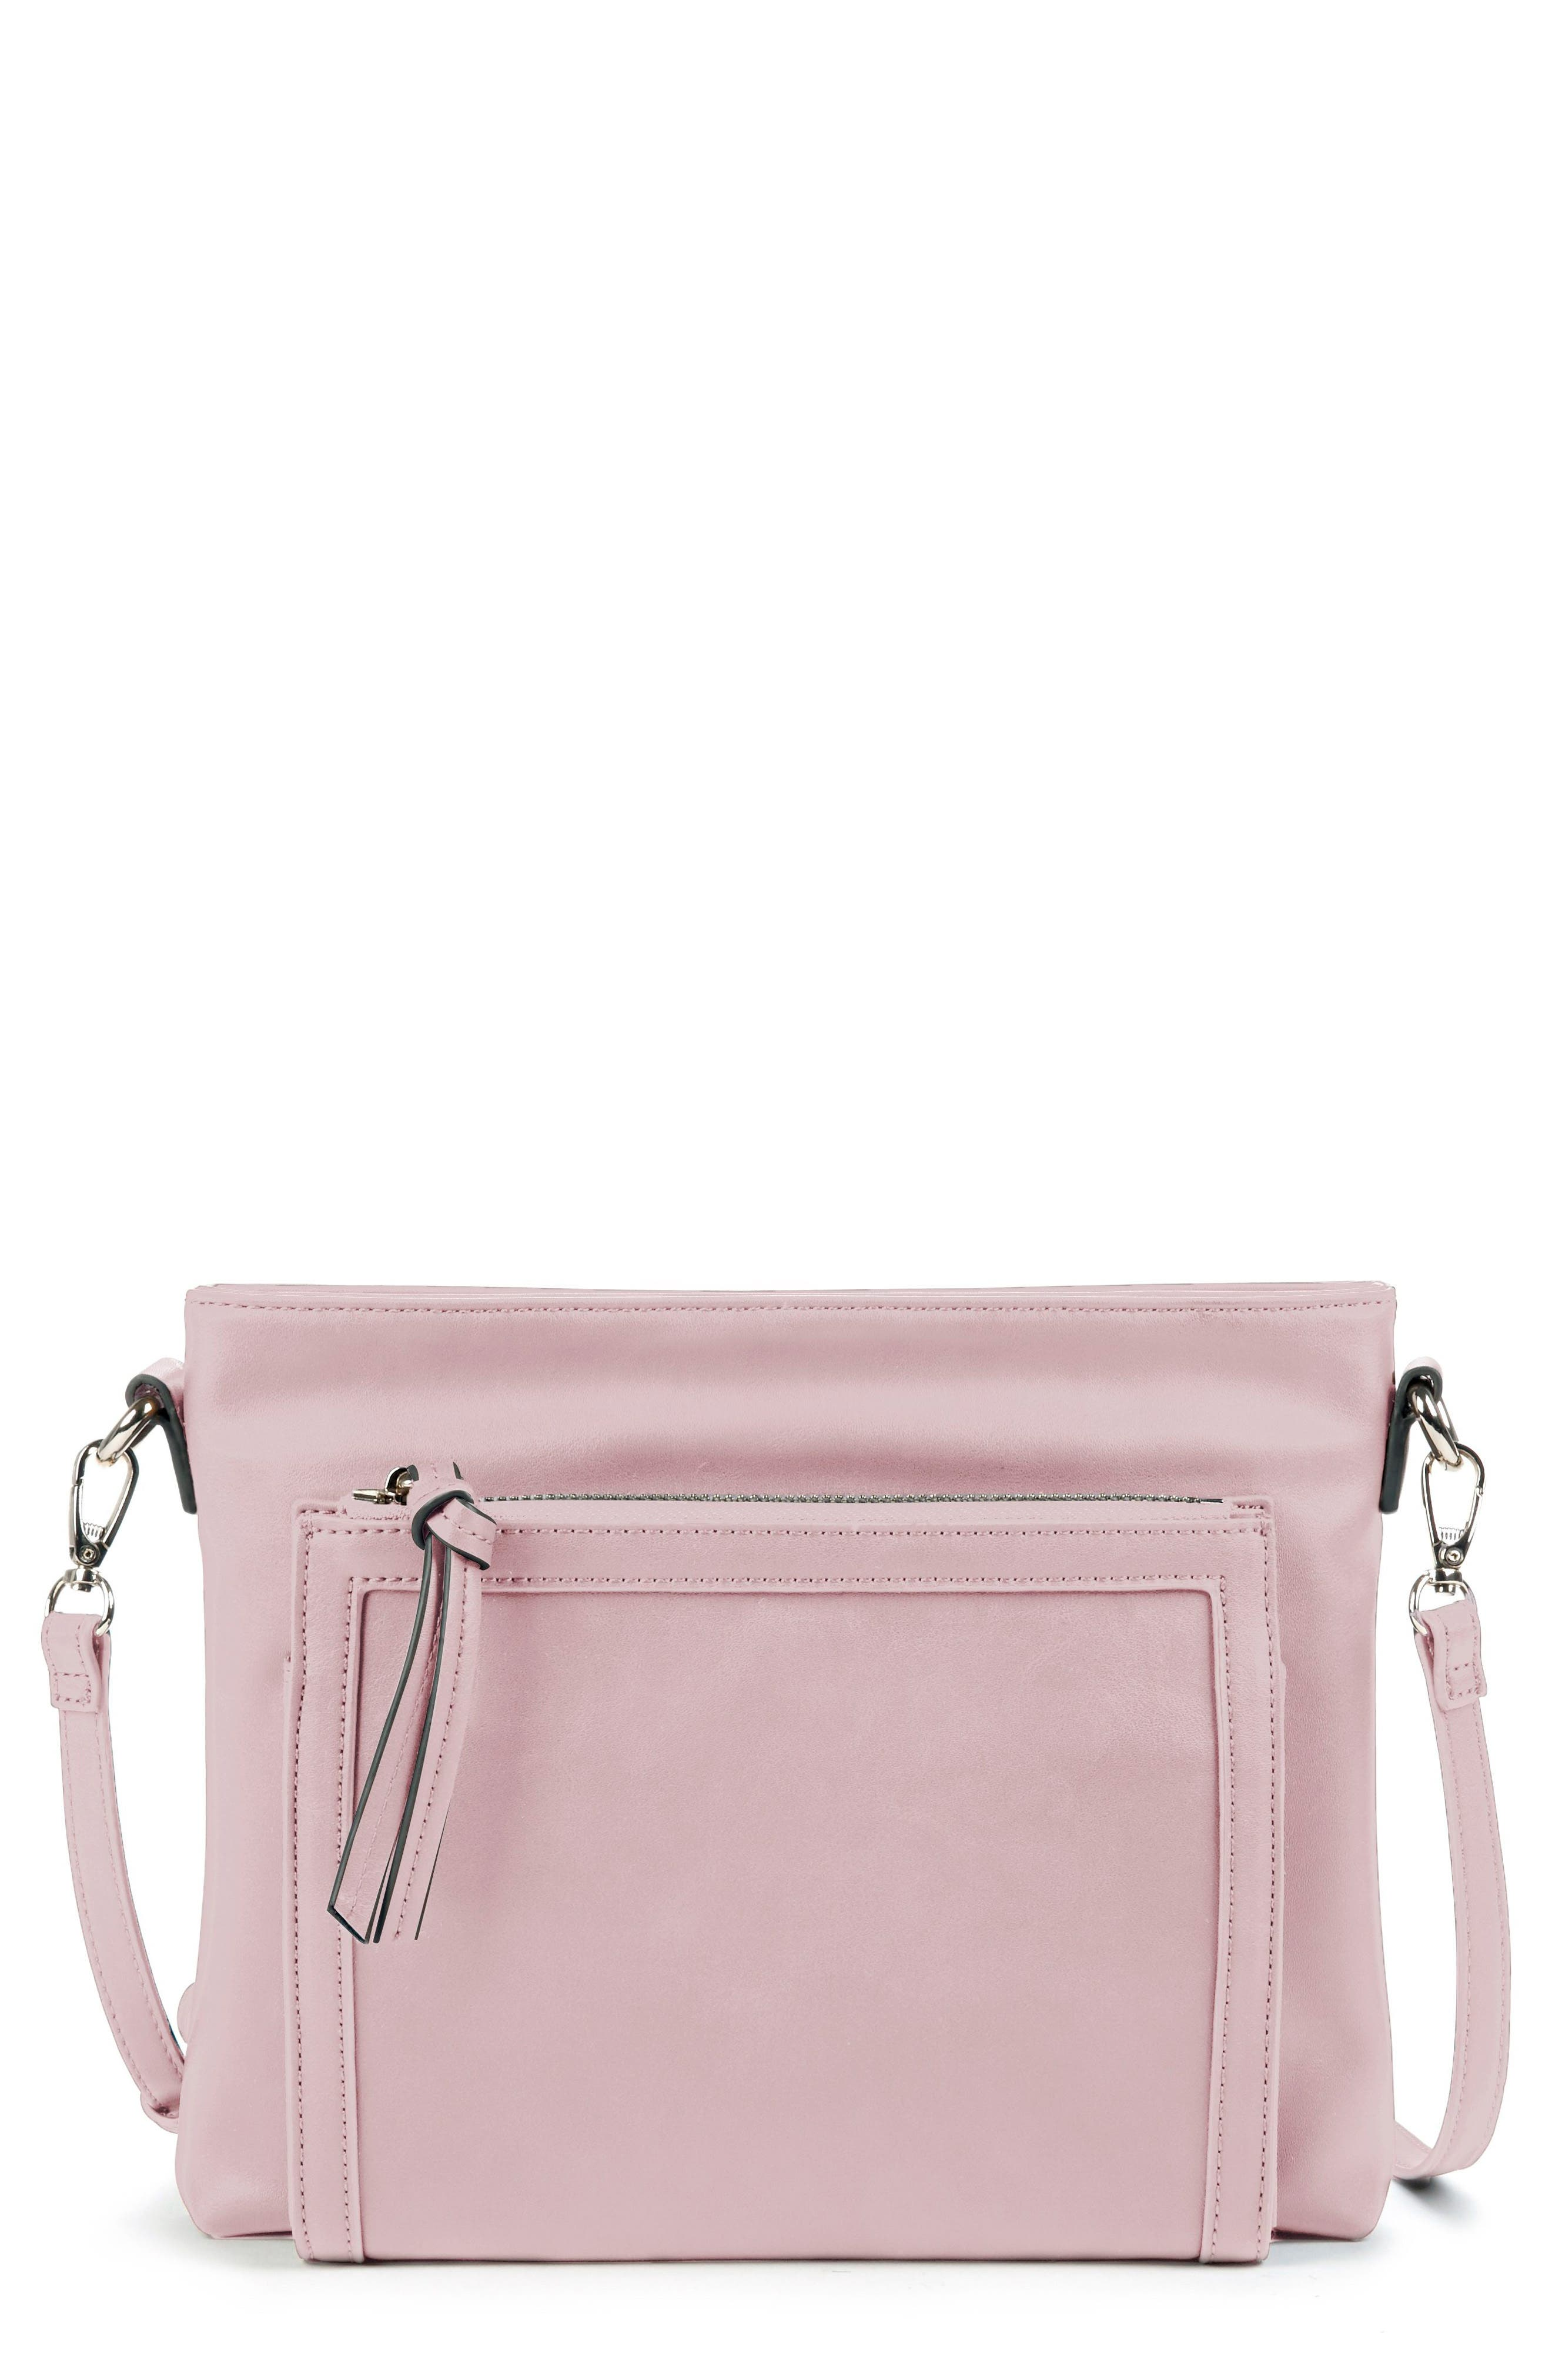 Alternate Image 1 Selected - Sole Society Flat Faux Leather Crossbody Bag